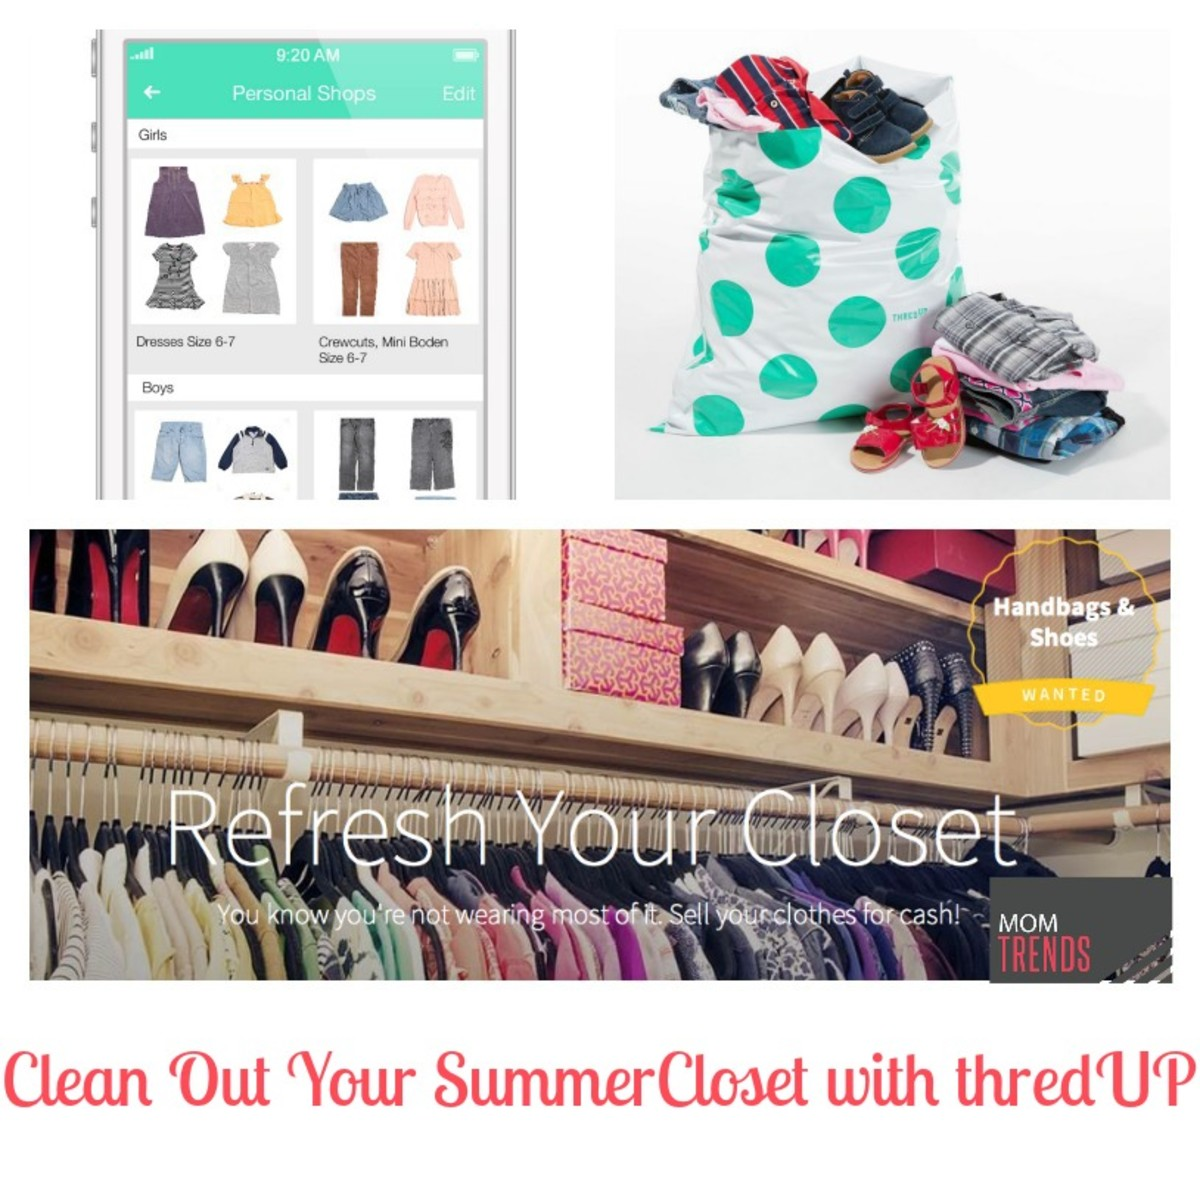 Clean Out Your Summer Clothes with thredUP